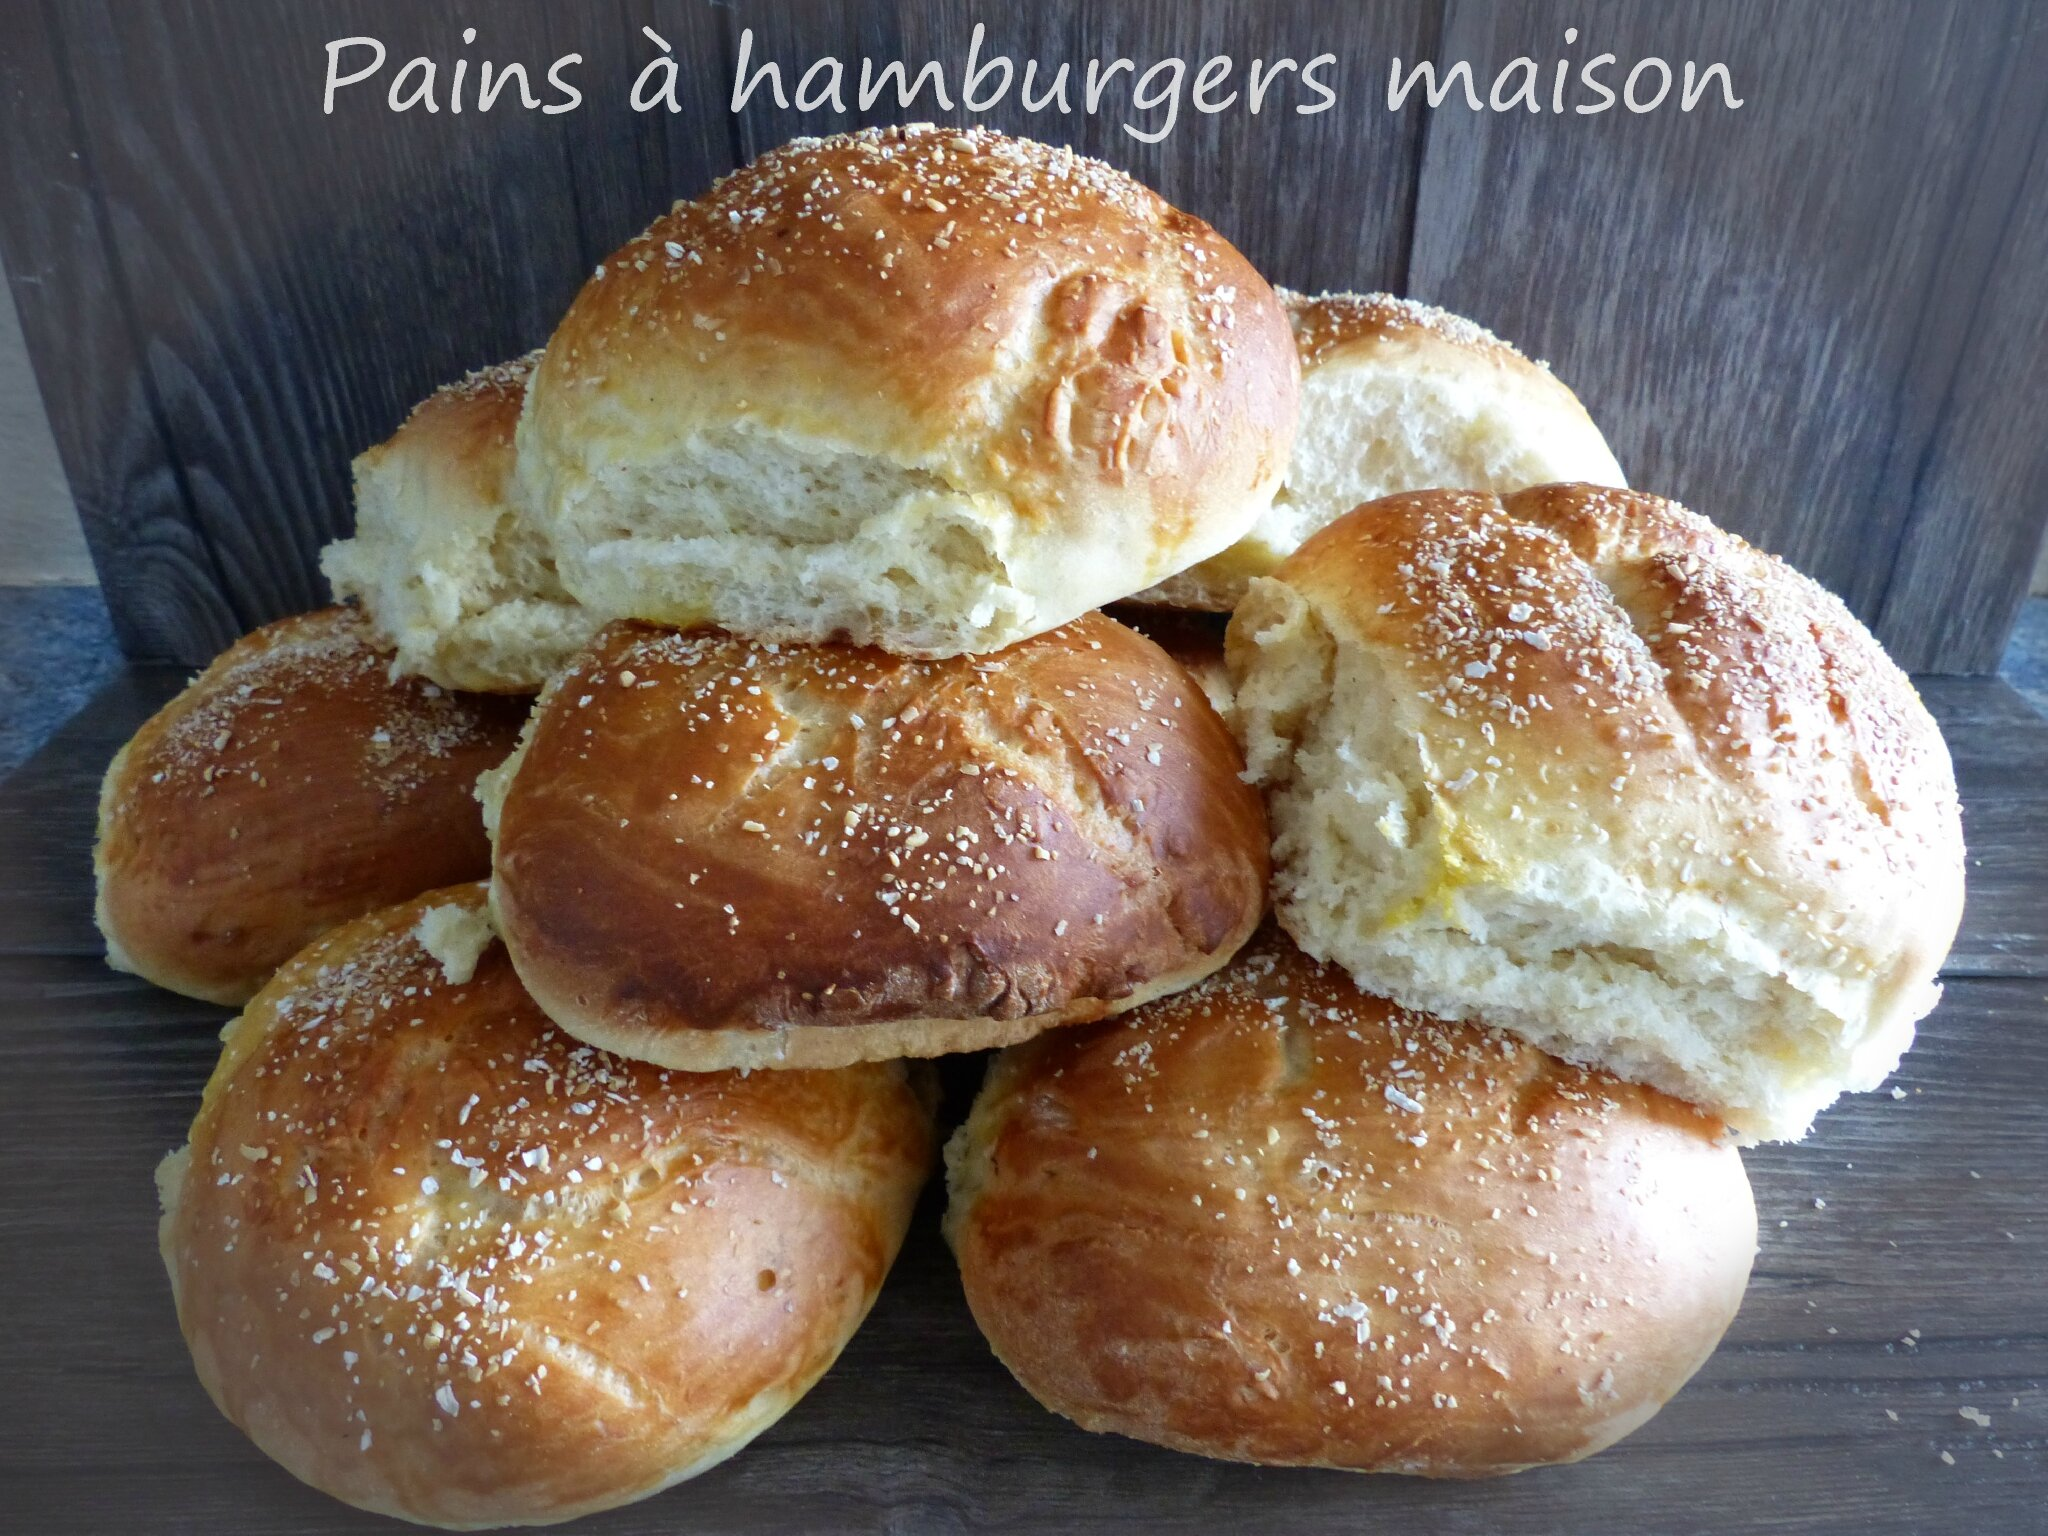 Pains à hamburgers